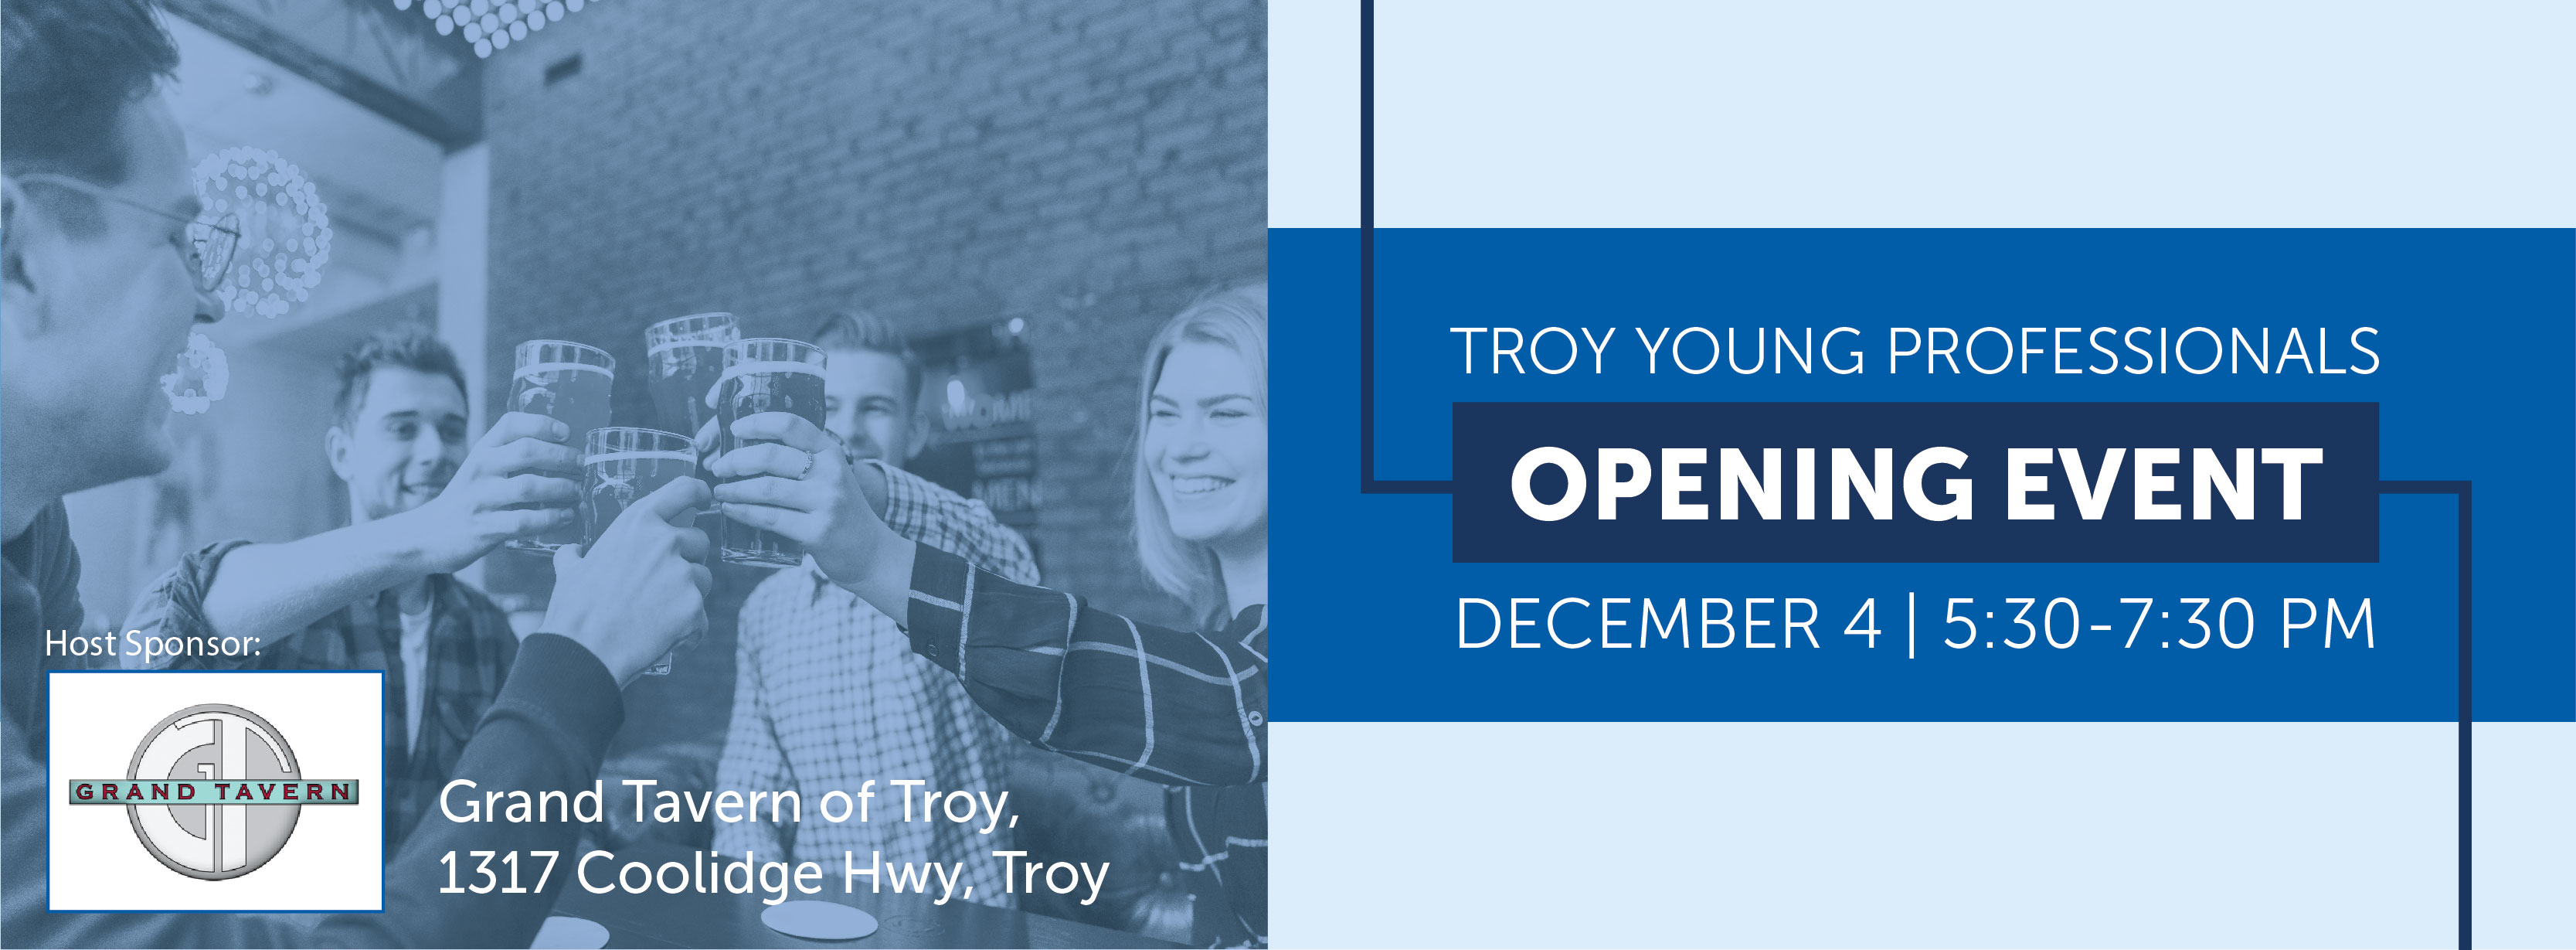 Troy Young Professionals Network: Opening Event